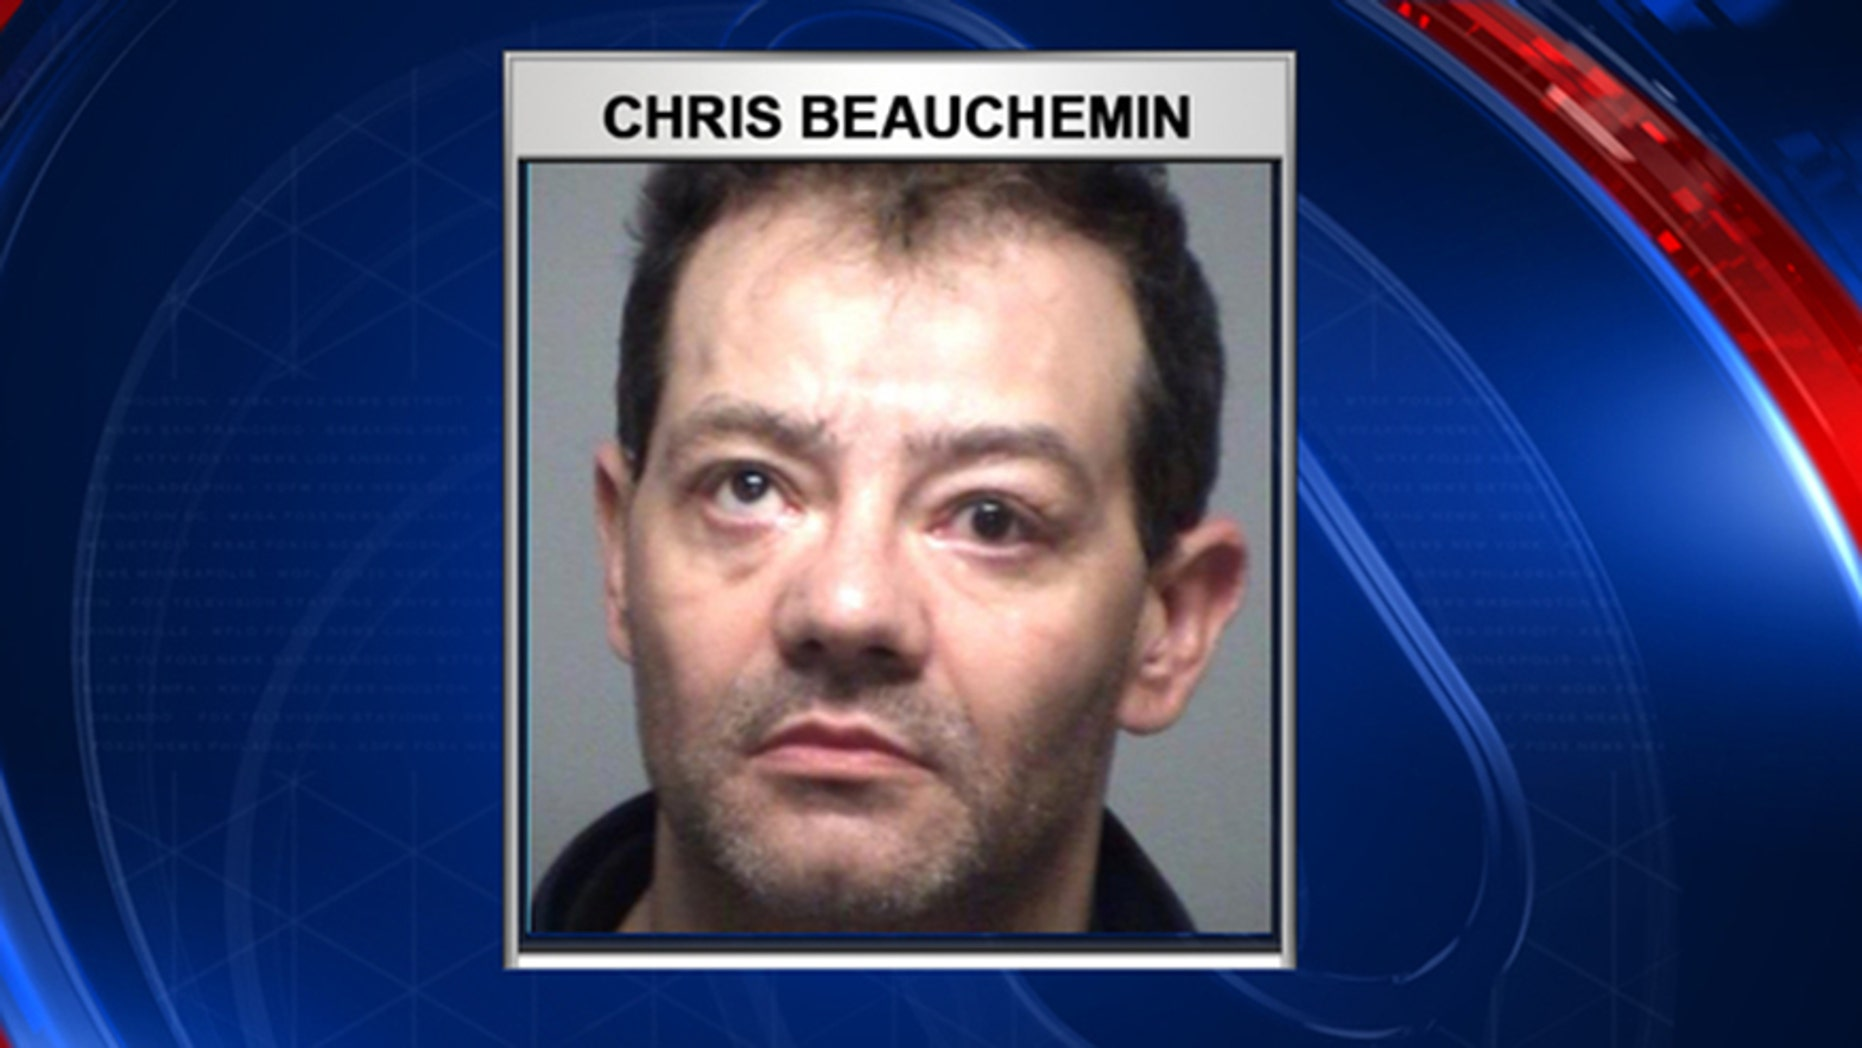 Christopher Beauchemin has been accused by police of driving drunk while dropping a child off at school Wednesday morning.